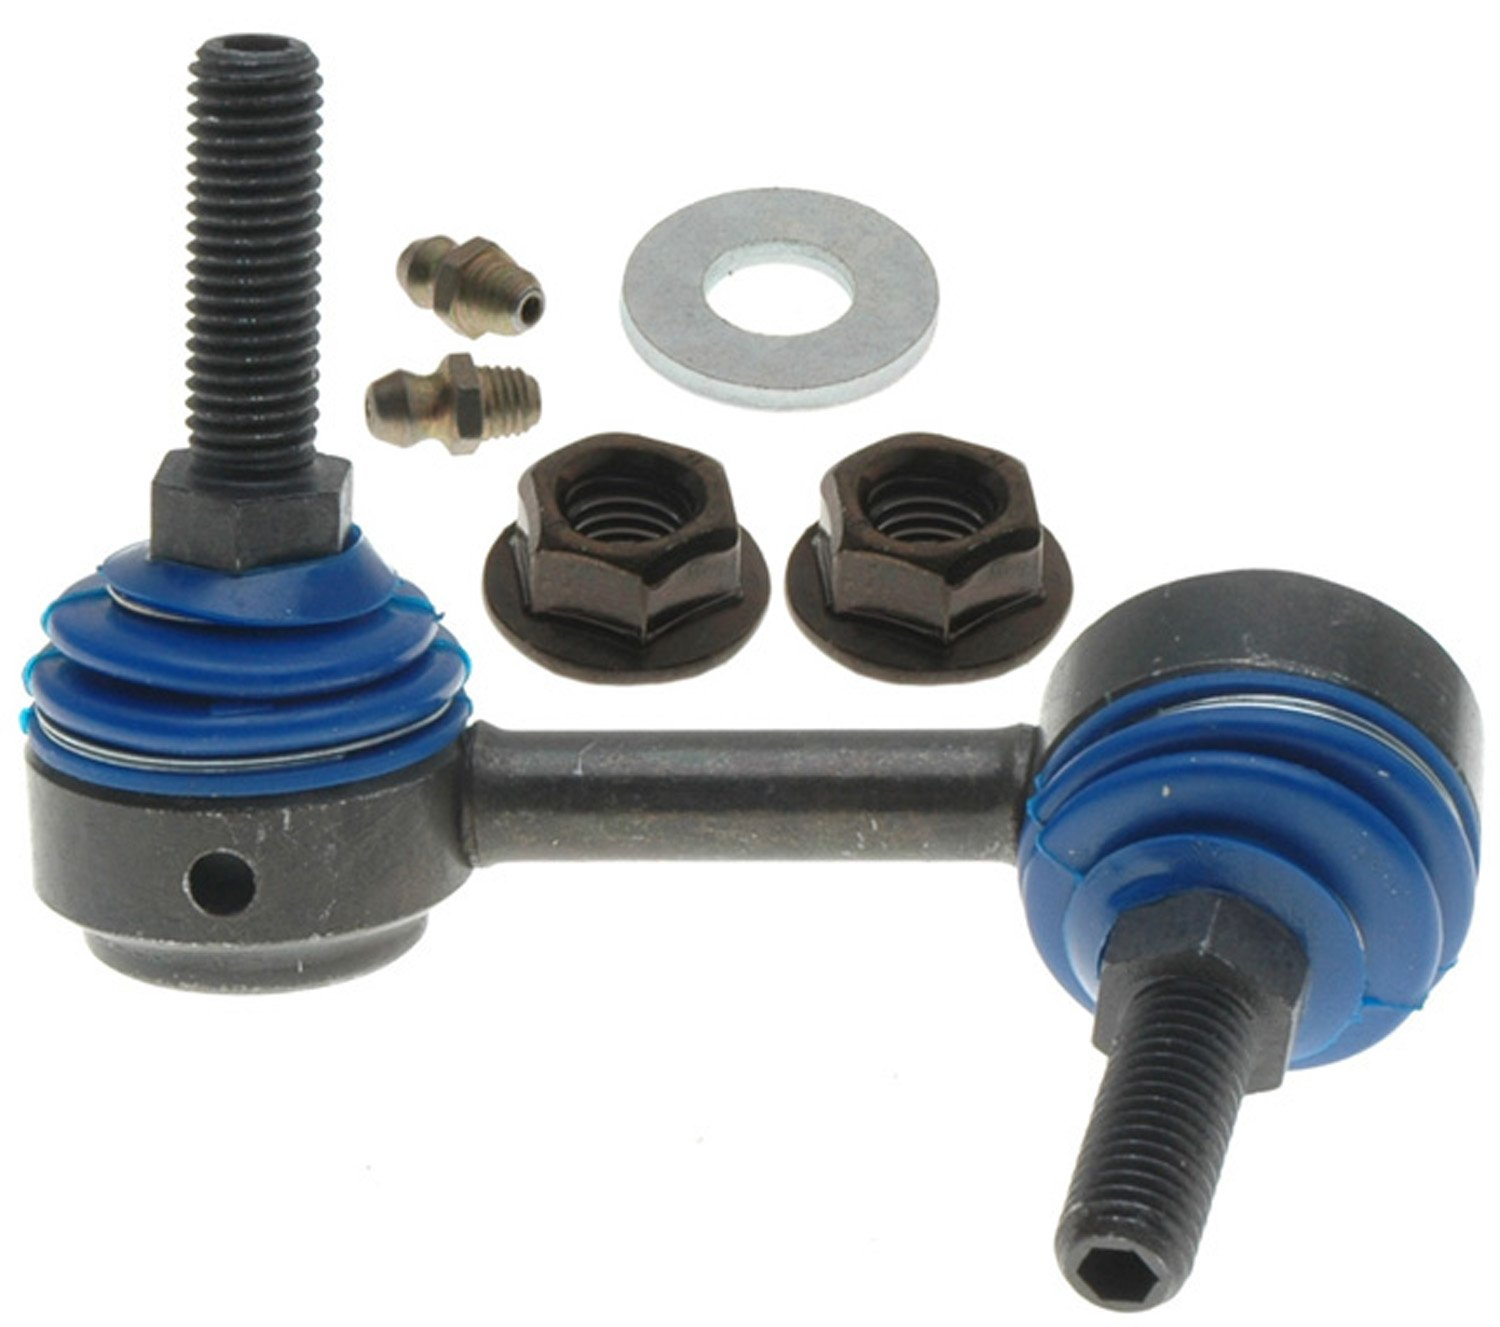 Acdelco 45g0252 Professional Front Passenger Side Gmc Envoy Rear Suspension Stabilizer Bar Link Automotive